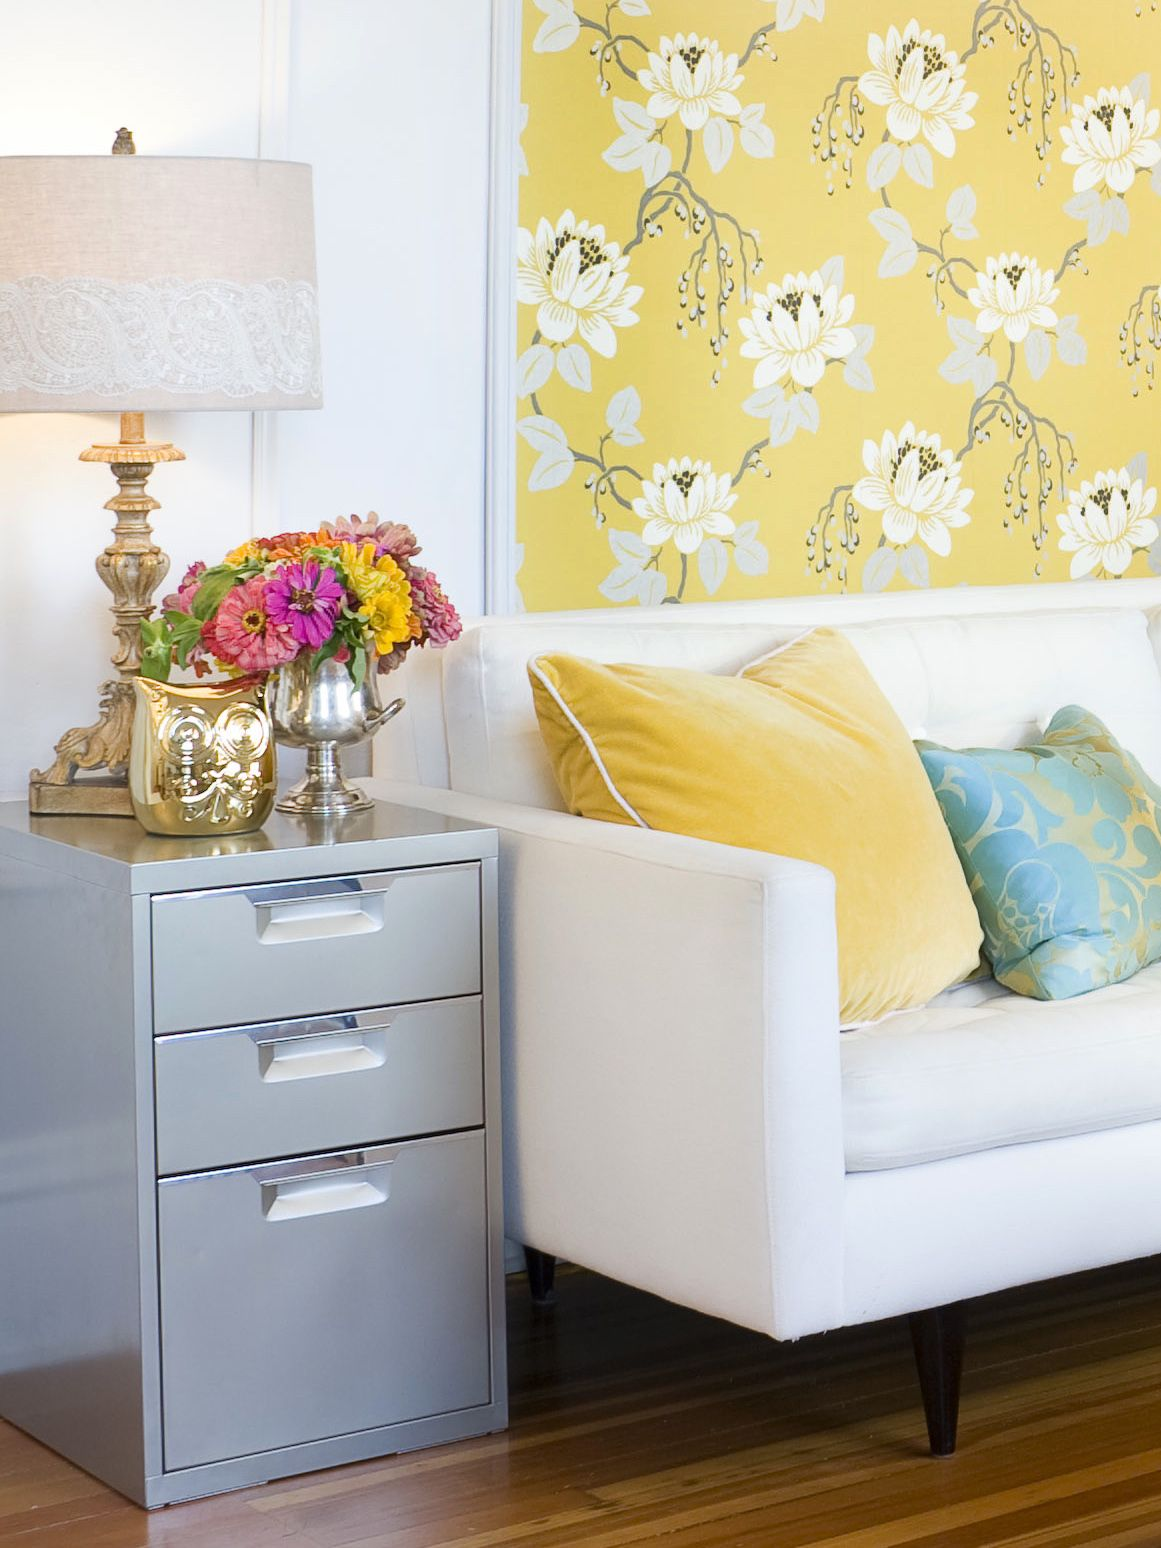 Dorm Room Furniture: Dorm Décor Tip: Buy Pieces That Are Multifunctional